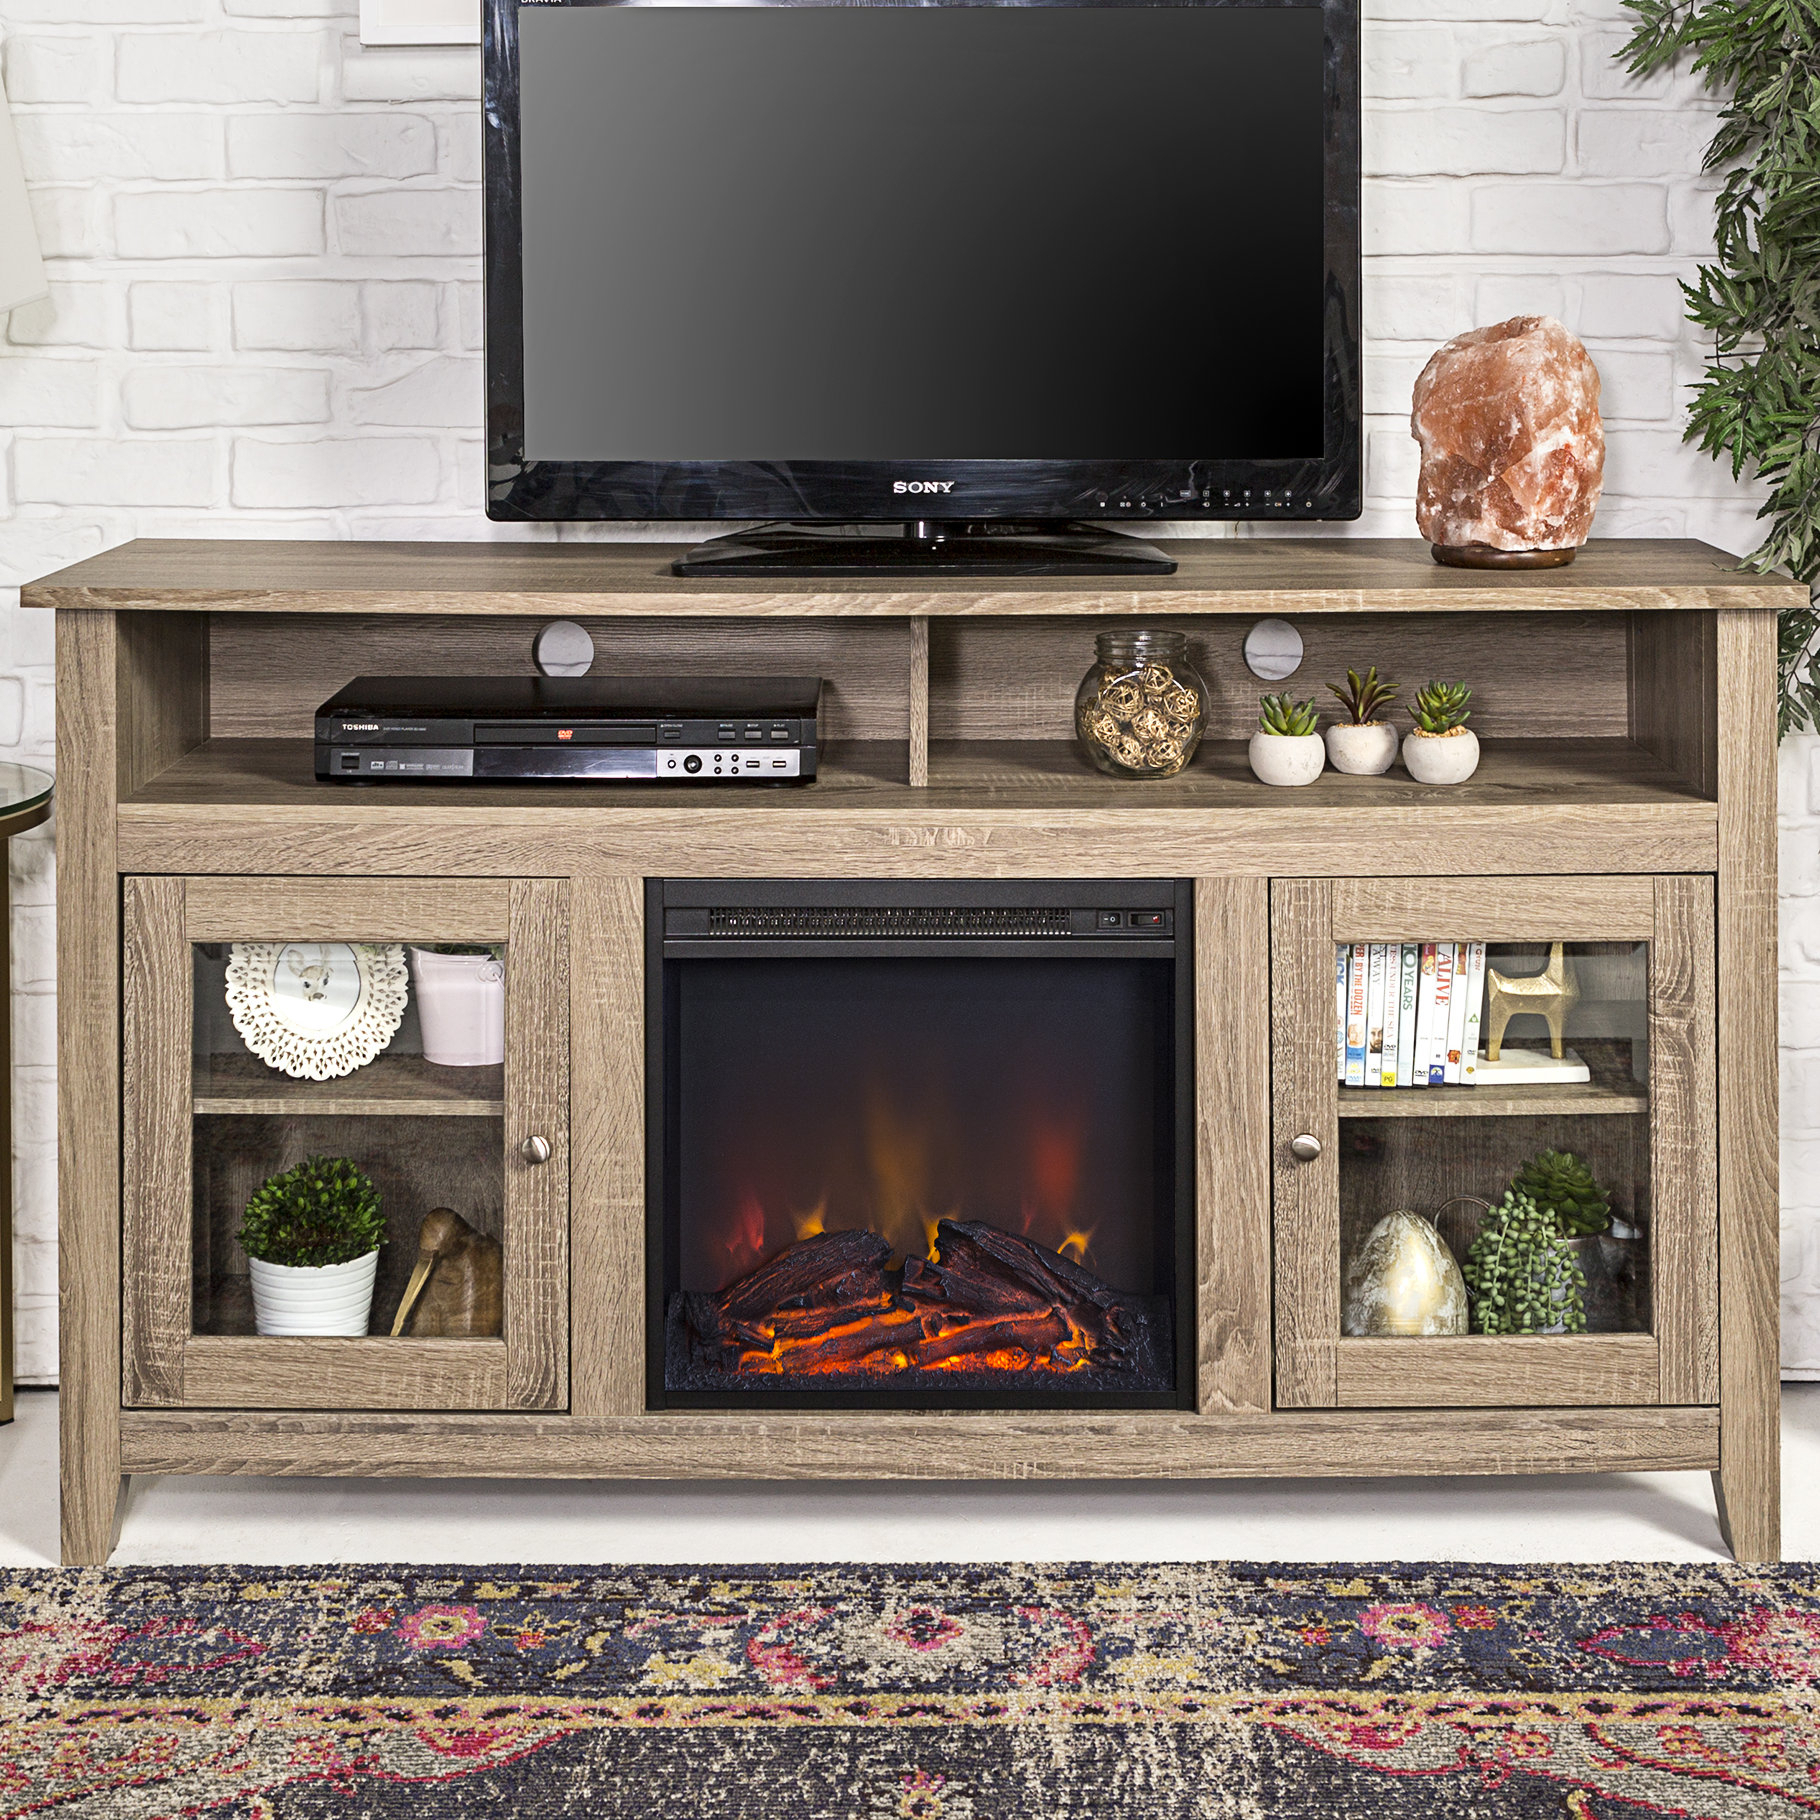 Fireplace Tv Stands & Entertainment Centers You'll Love | Wayfair.ca intended for Sinclair Blue 74 Inch Tv Stands (Image 10 of 30)